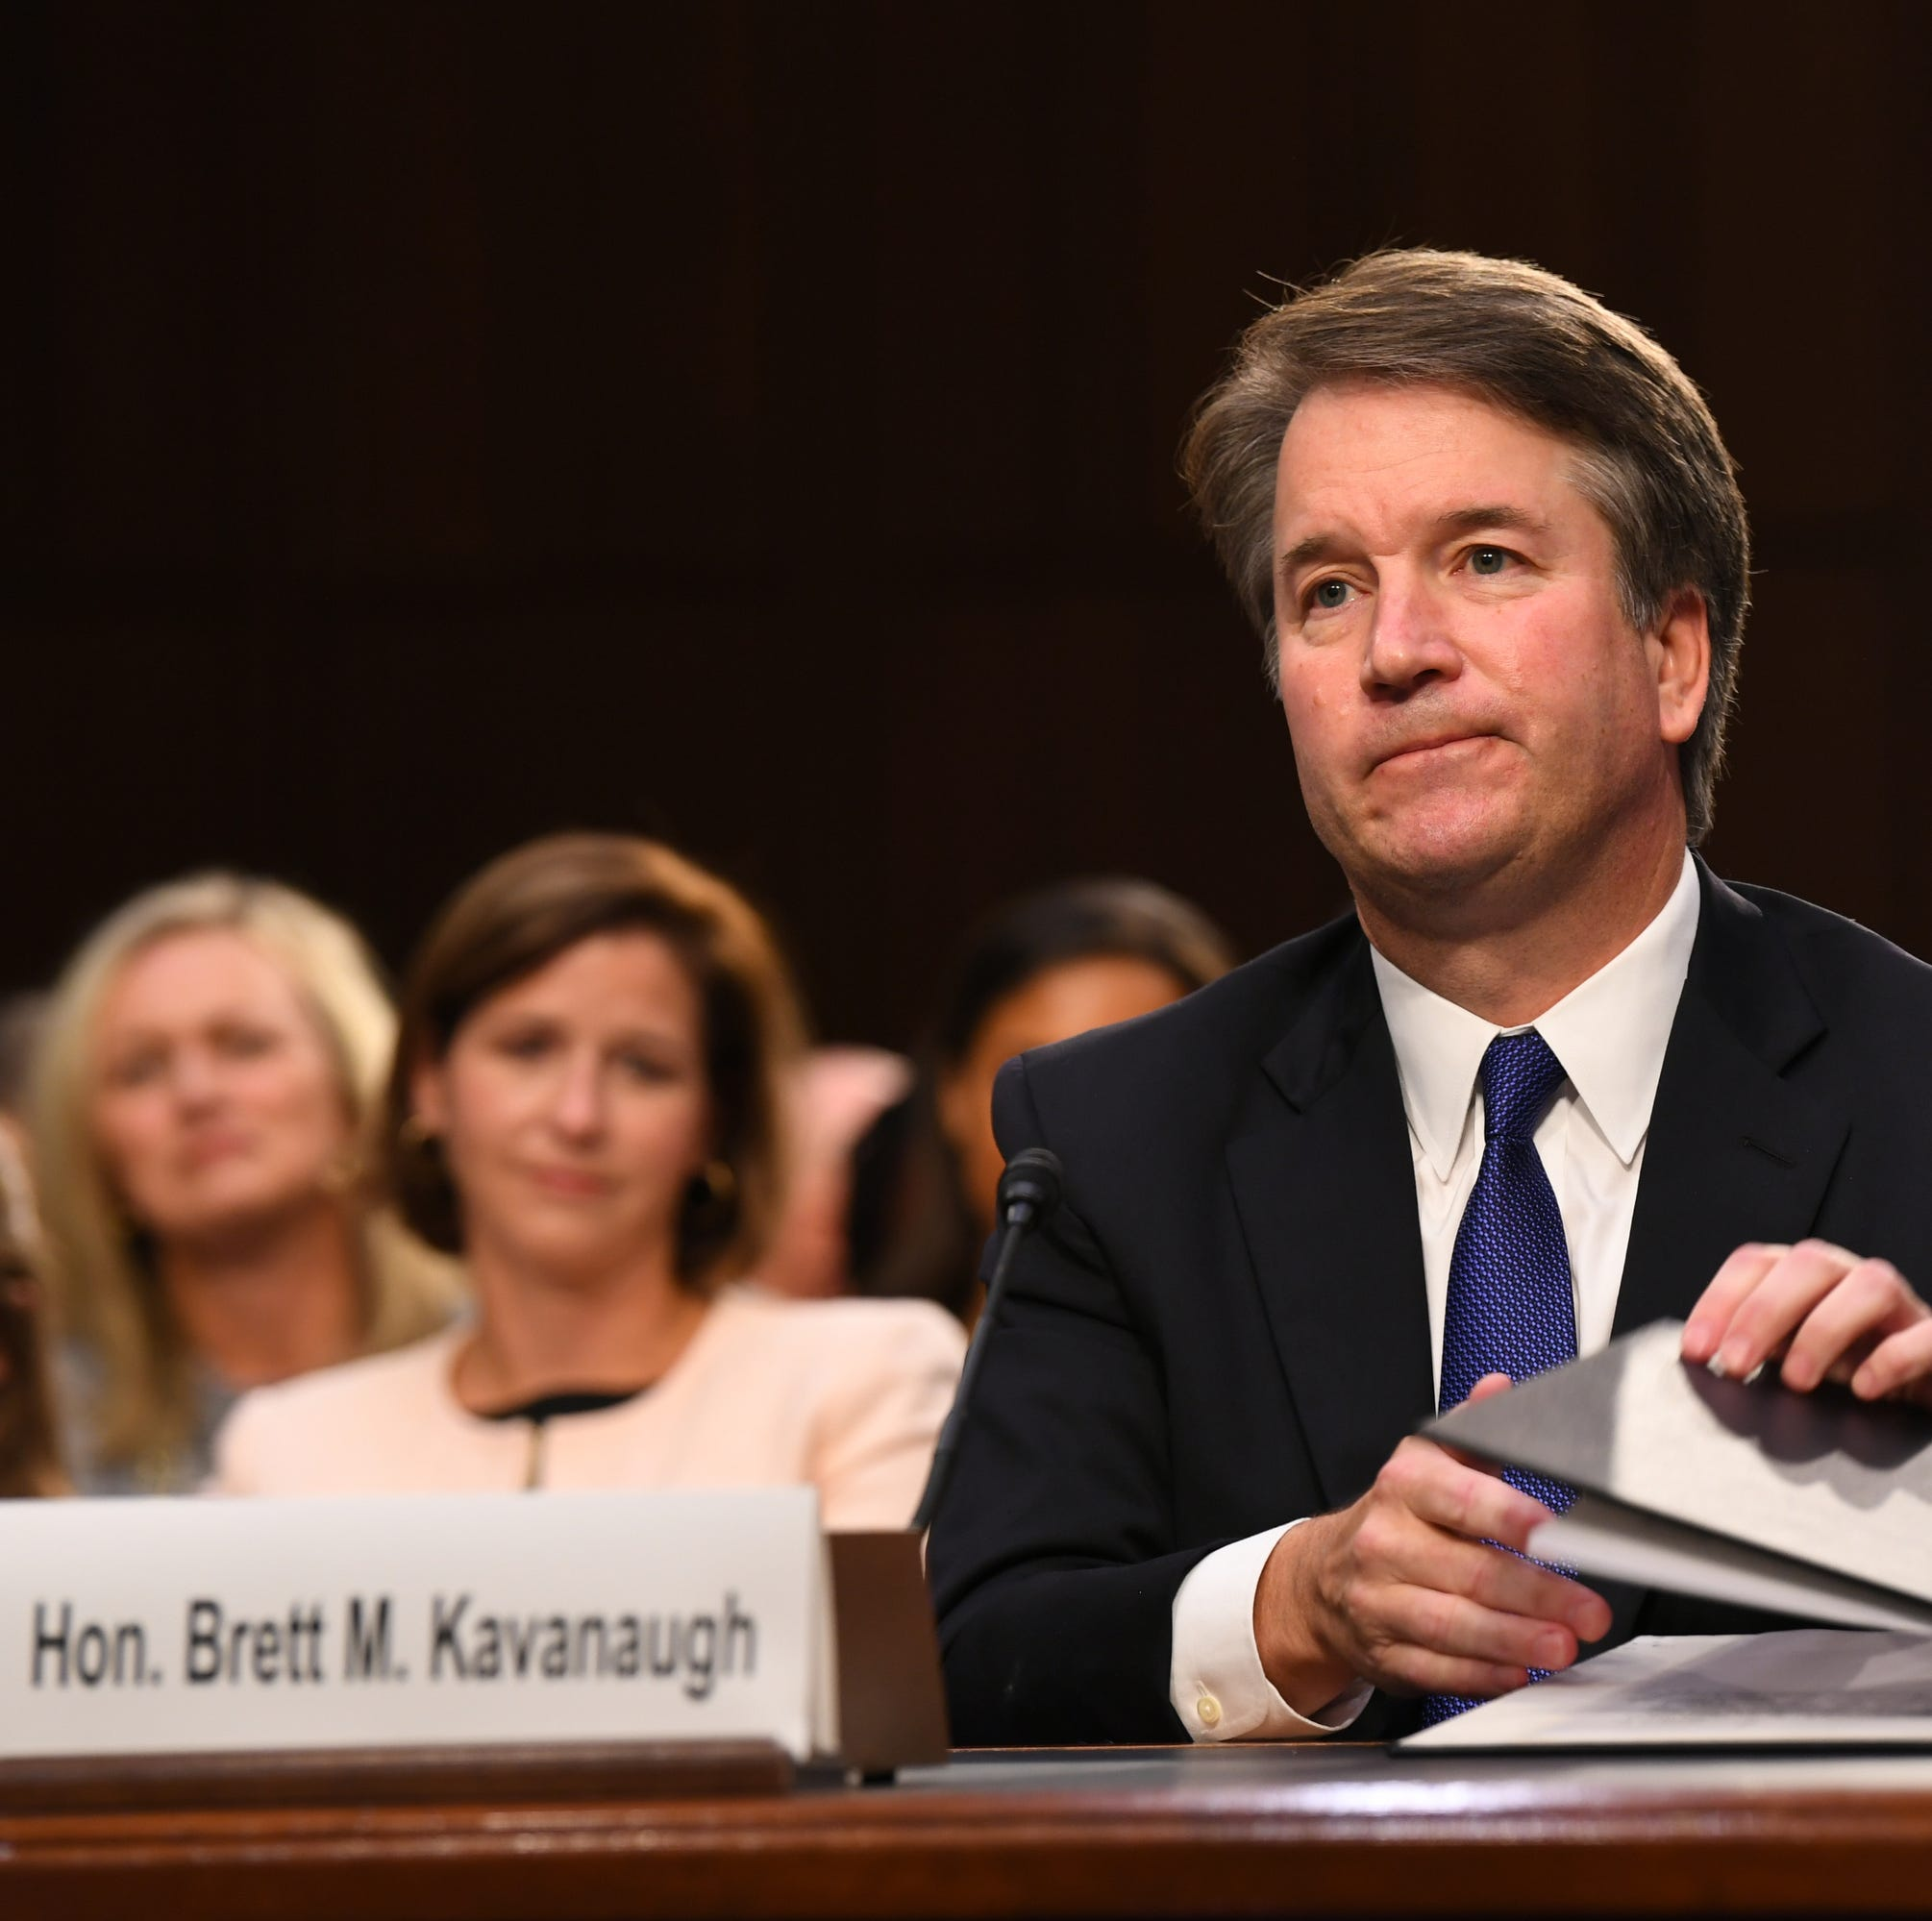 Supreme Court nominee Brett Kavanaugh drew praise and opposition Friday as his confirmation hearing drew to a close.